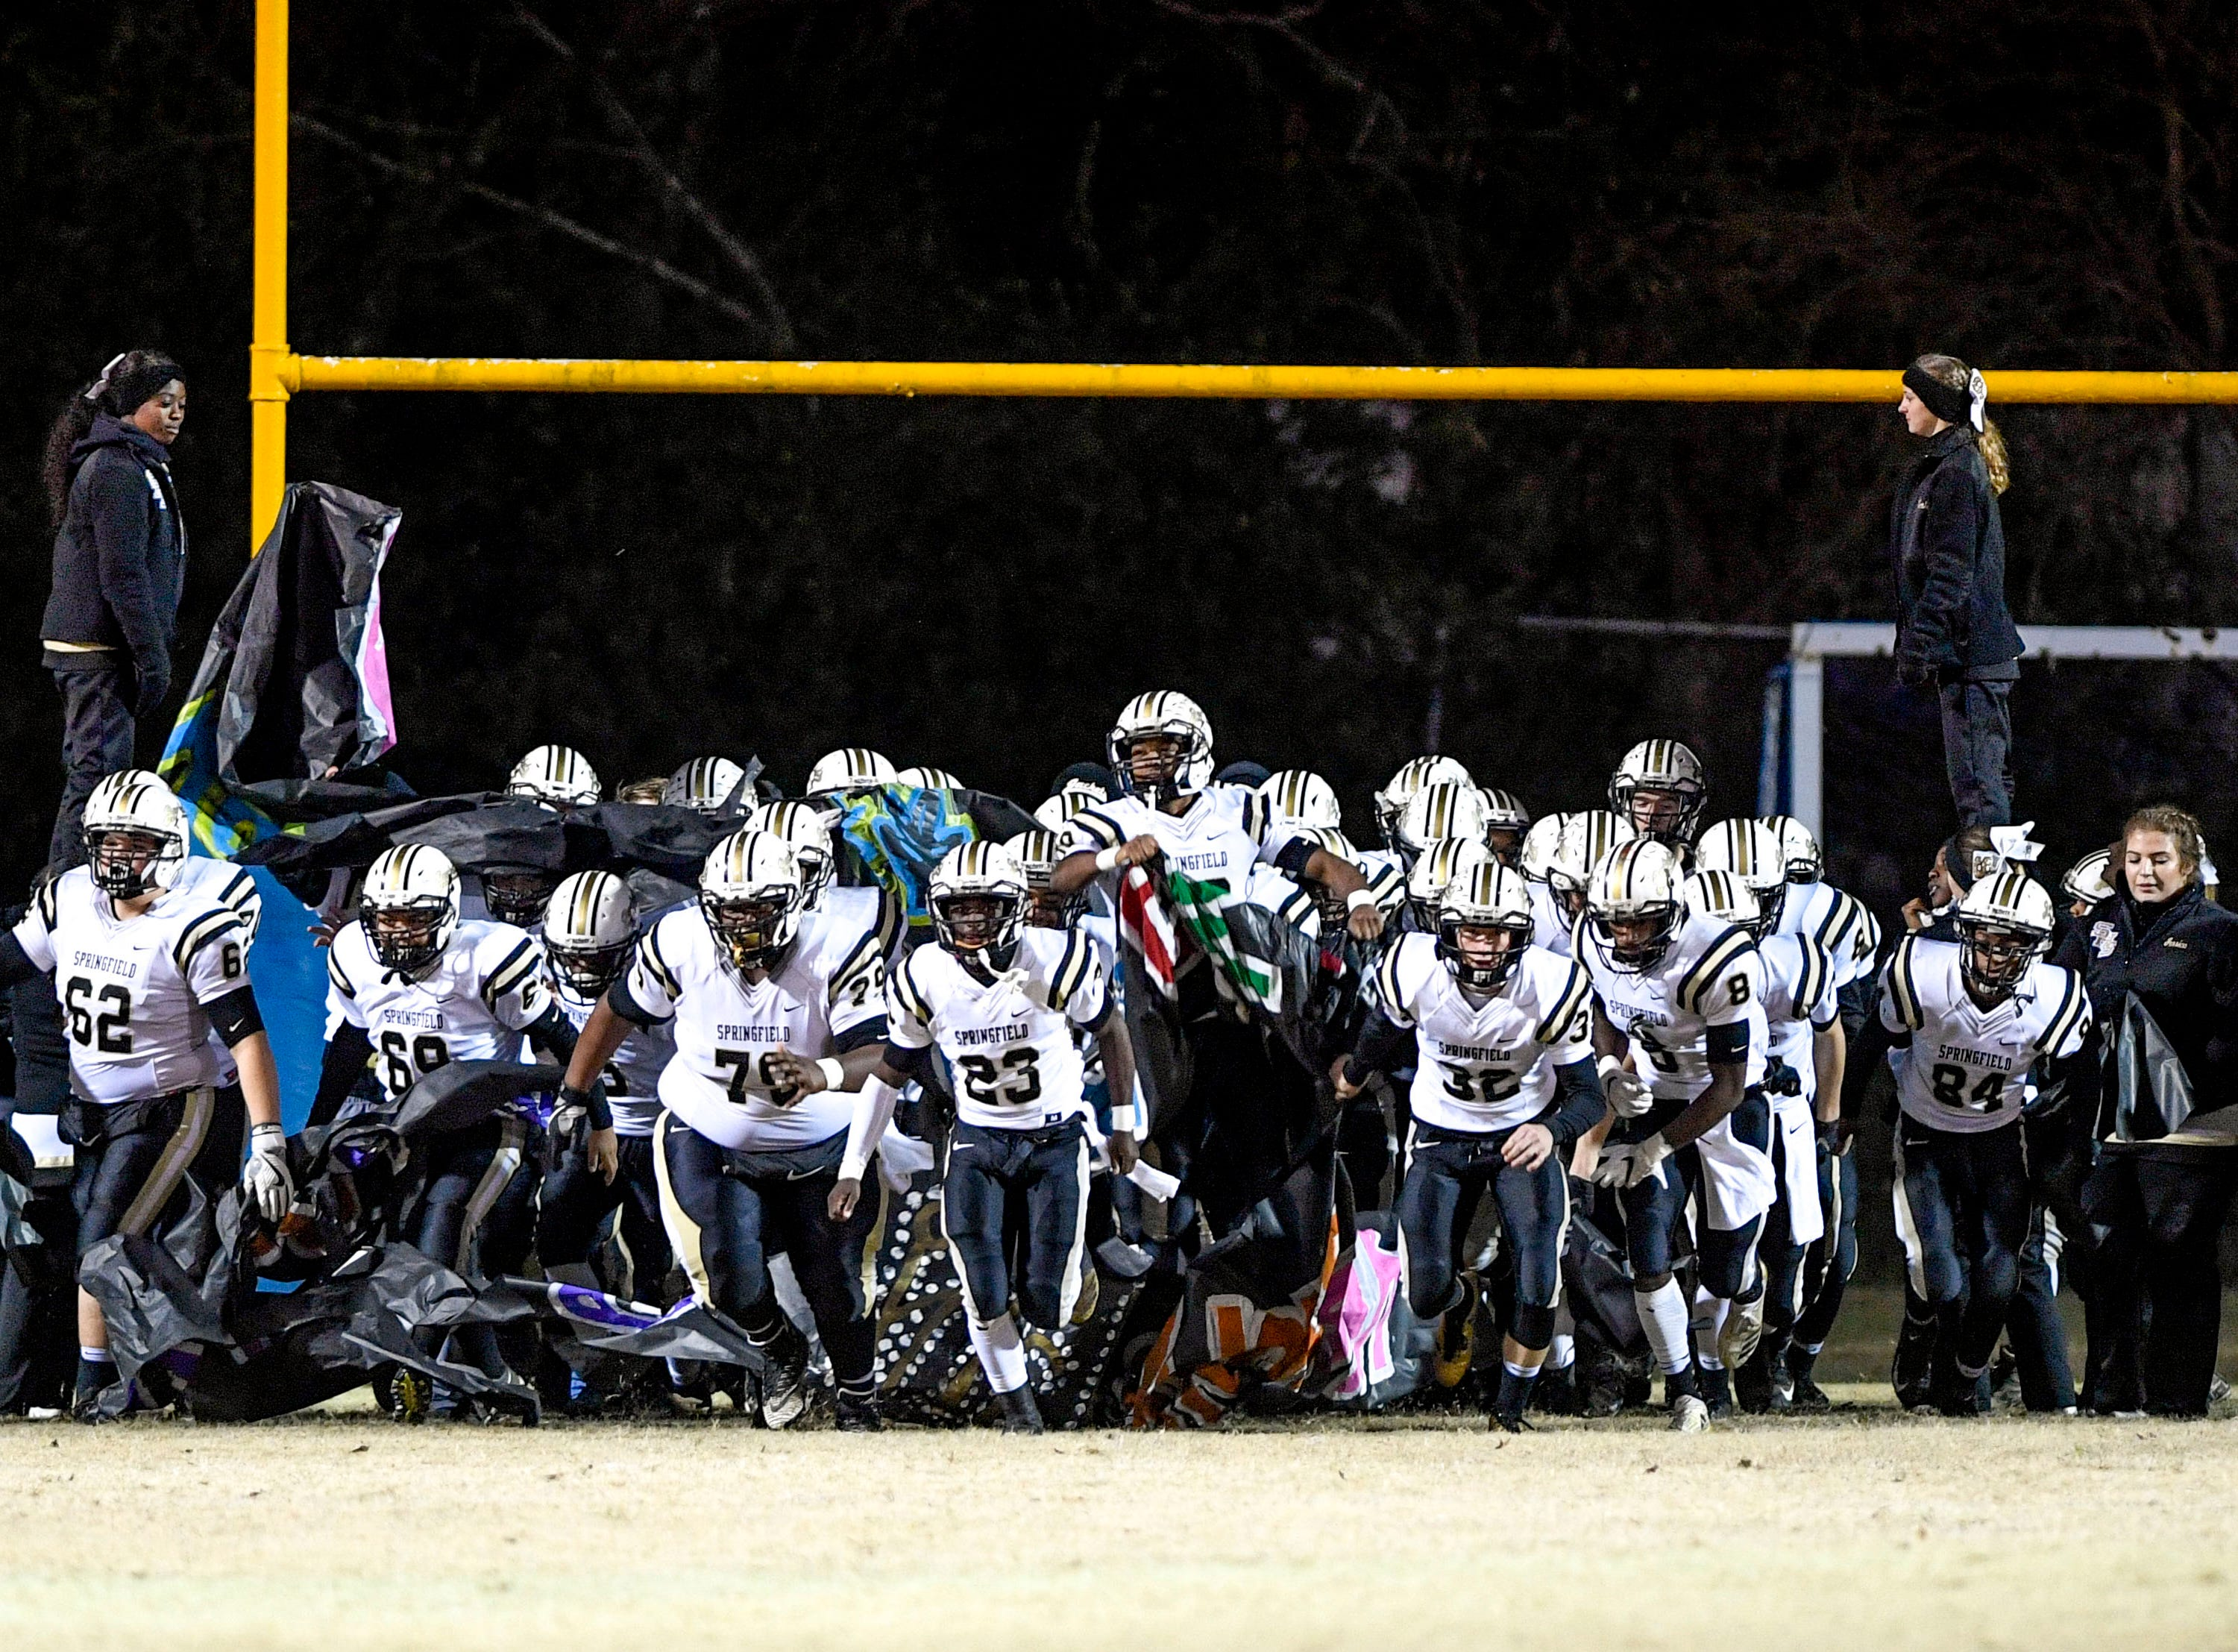 Springfield Yellowjackets enter the field tearing through a banner during a TSSAA playoff football game between Jackson North Side and Springfield High Schools at North Side High School in Jackson, Tenn., on Friday, Nov. 16, 2018.